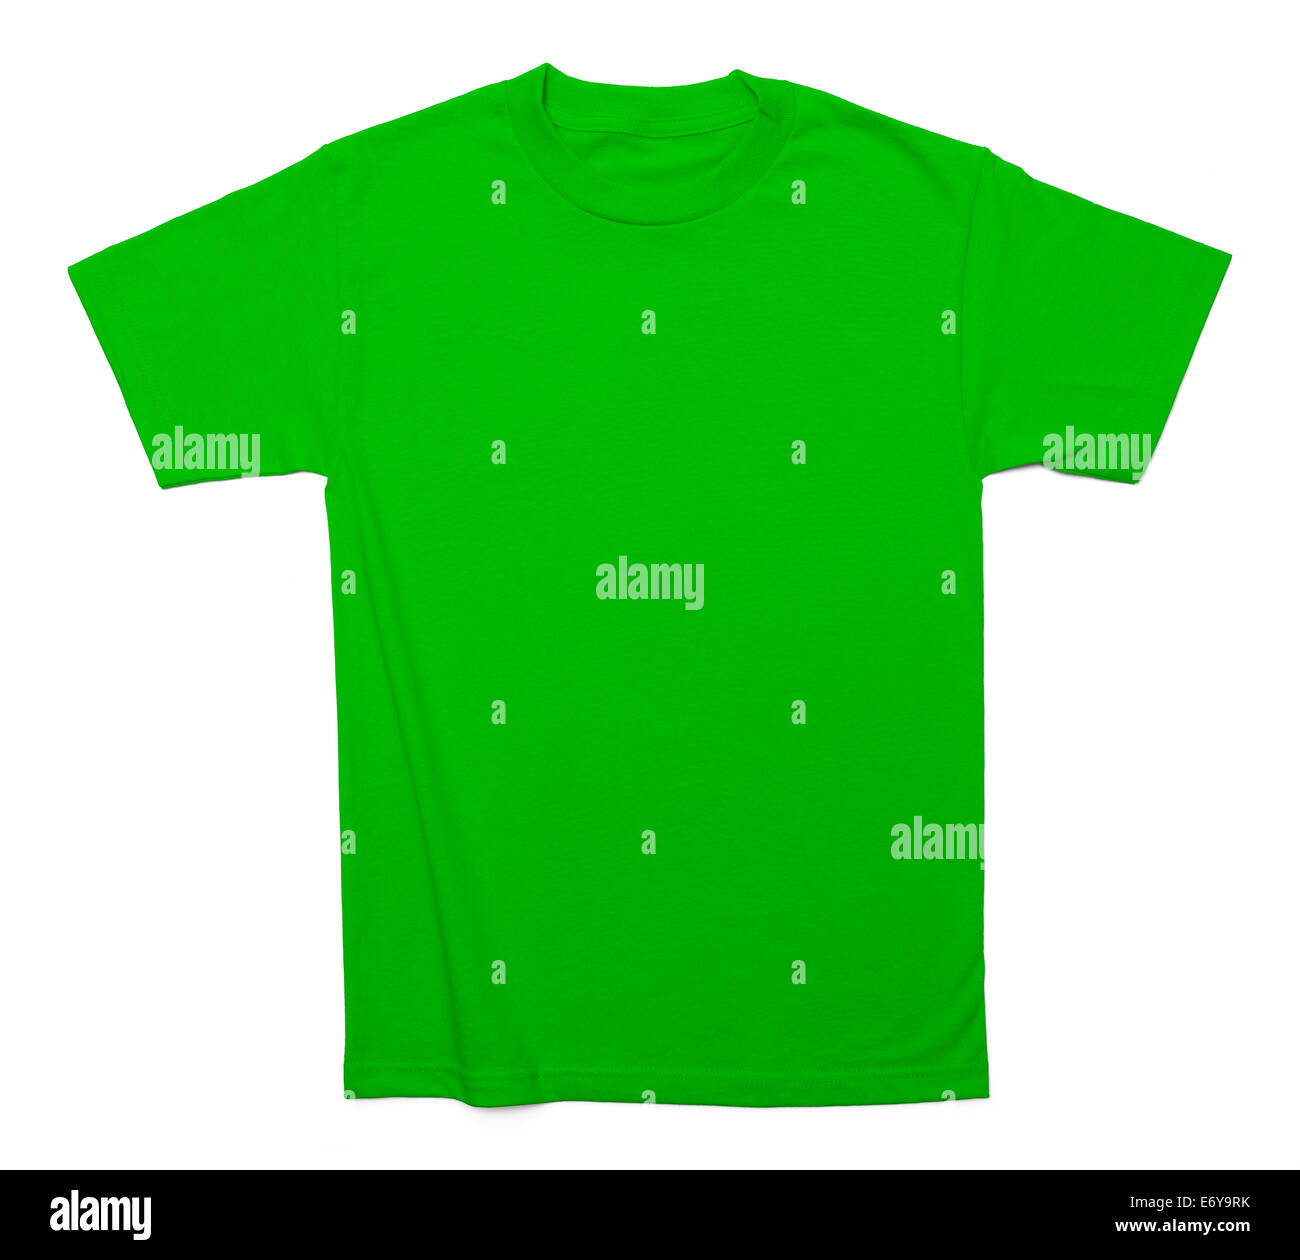 Green Cotton Shirt with Copy Space Isolated on White Background. - Stock Image